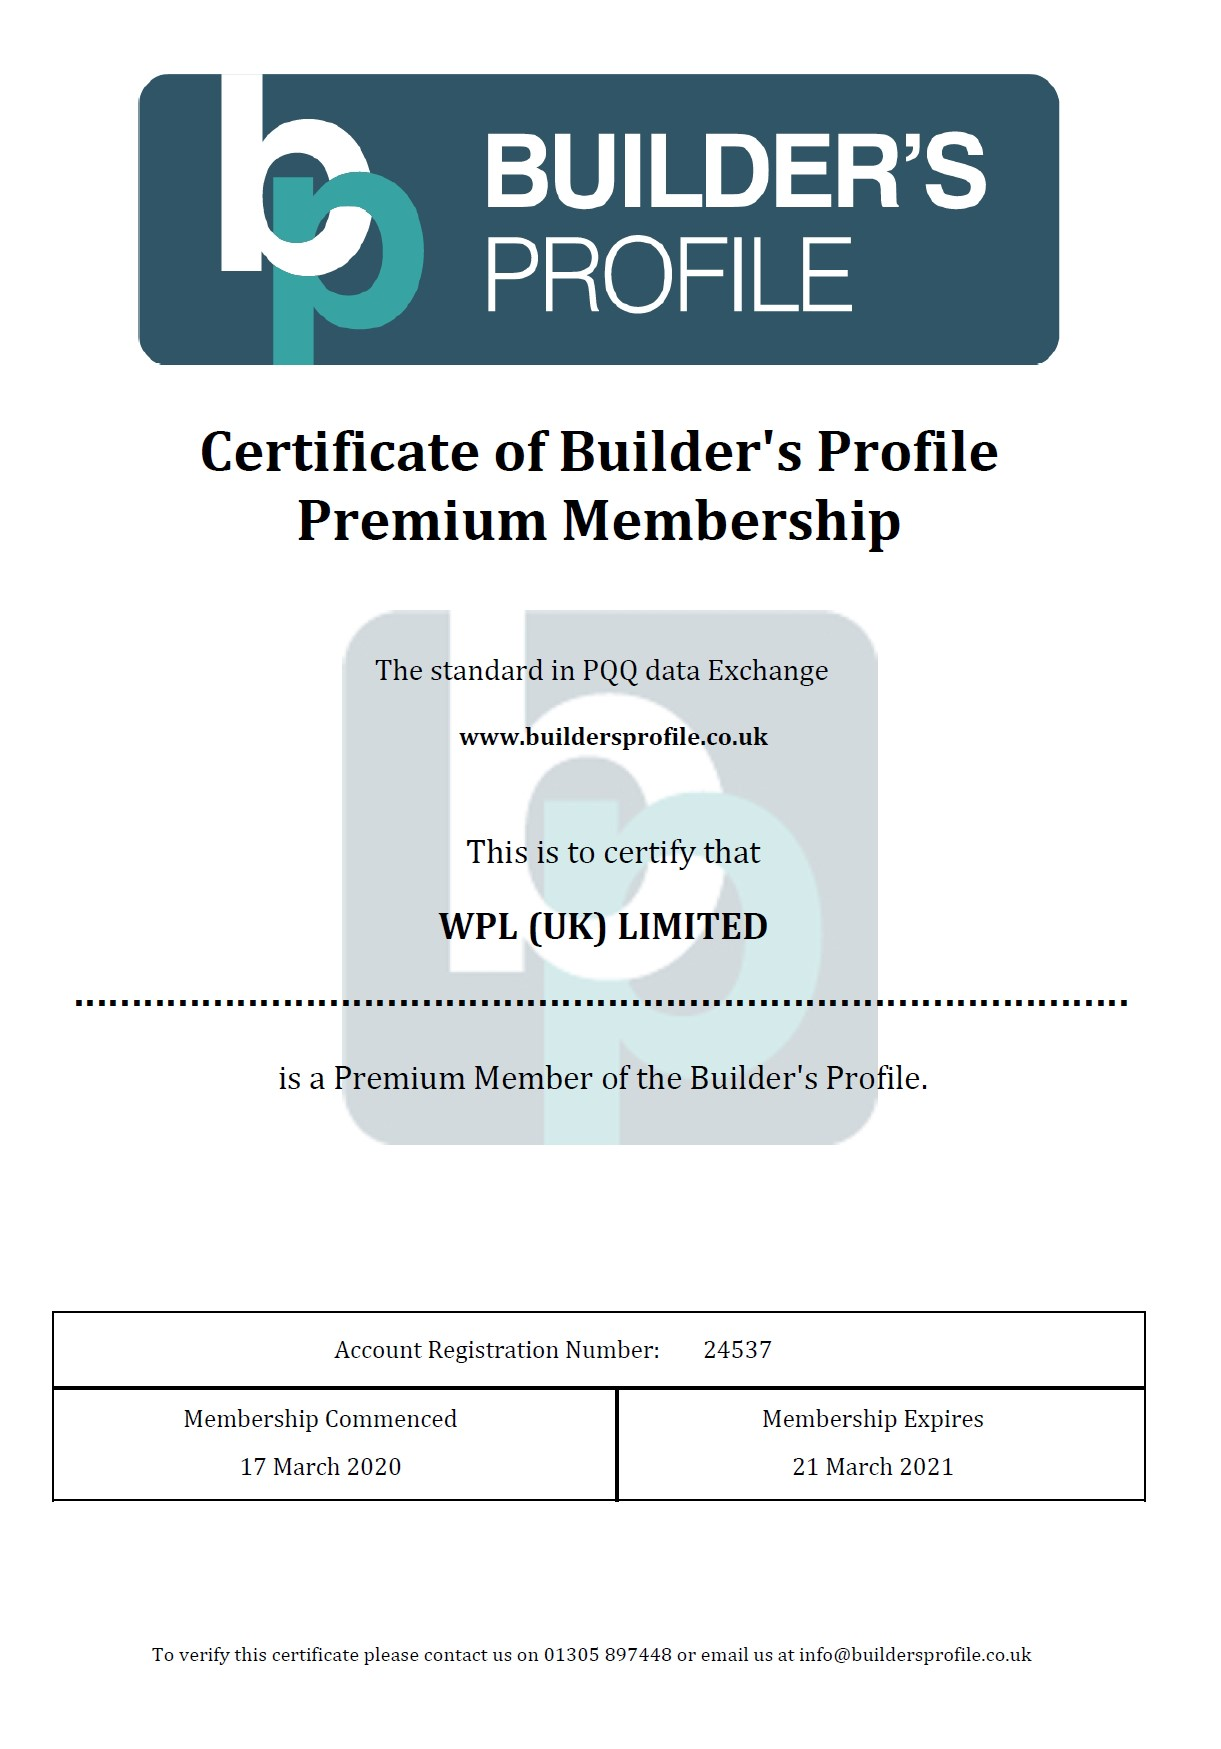 WPLUK Builder's Profile Premium Membership Certificate to 21st March 2021